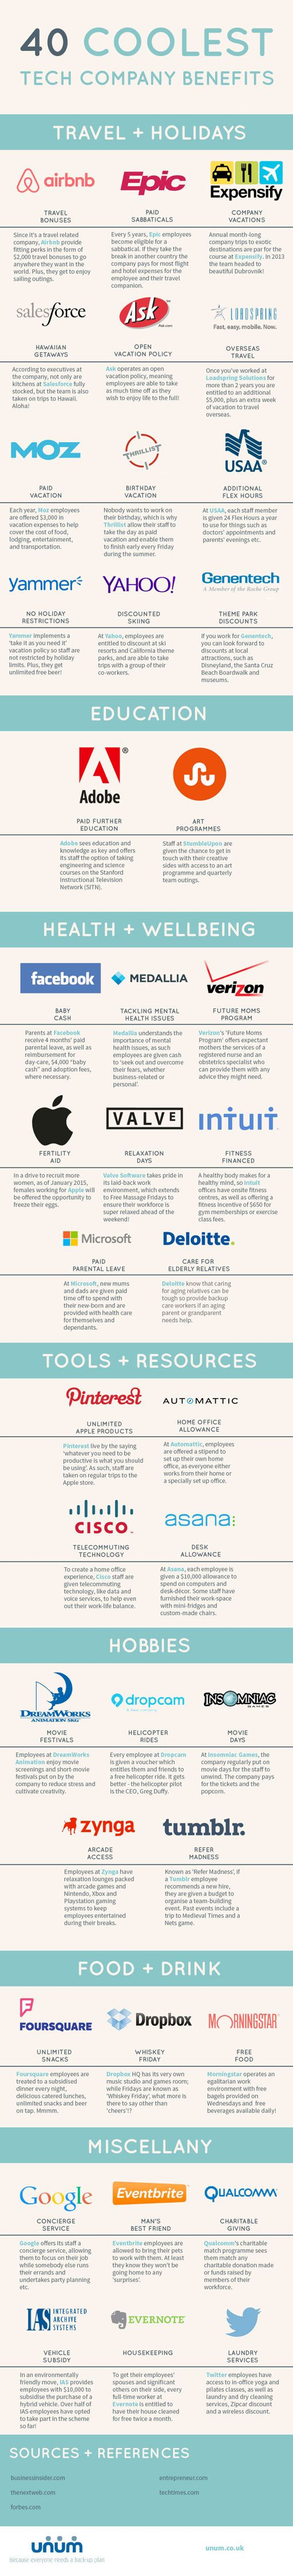 Free Helicopter Ride, Anyone? 40 Awesome and Absurd Tech Company Perks.   Regardless of their actual usefulness for attracting and retaining top talent, all of these plush benefits make for fascinating reading. Unum, a financial protection insurer based in the U.K., has compiled an infographic that showcases 40 alternatively useful, over-the-top, and down-right bizarre tech company benefits.  http://www.entrepreneur.com/article/241746